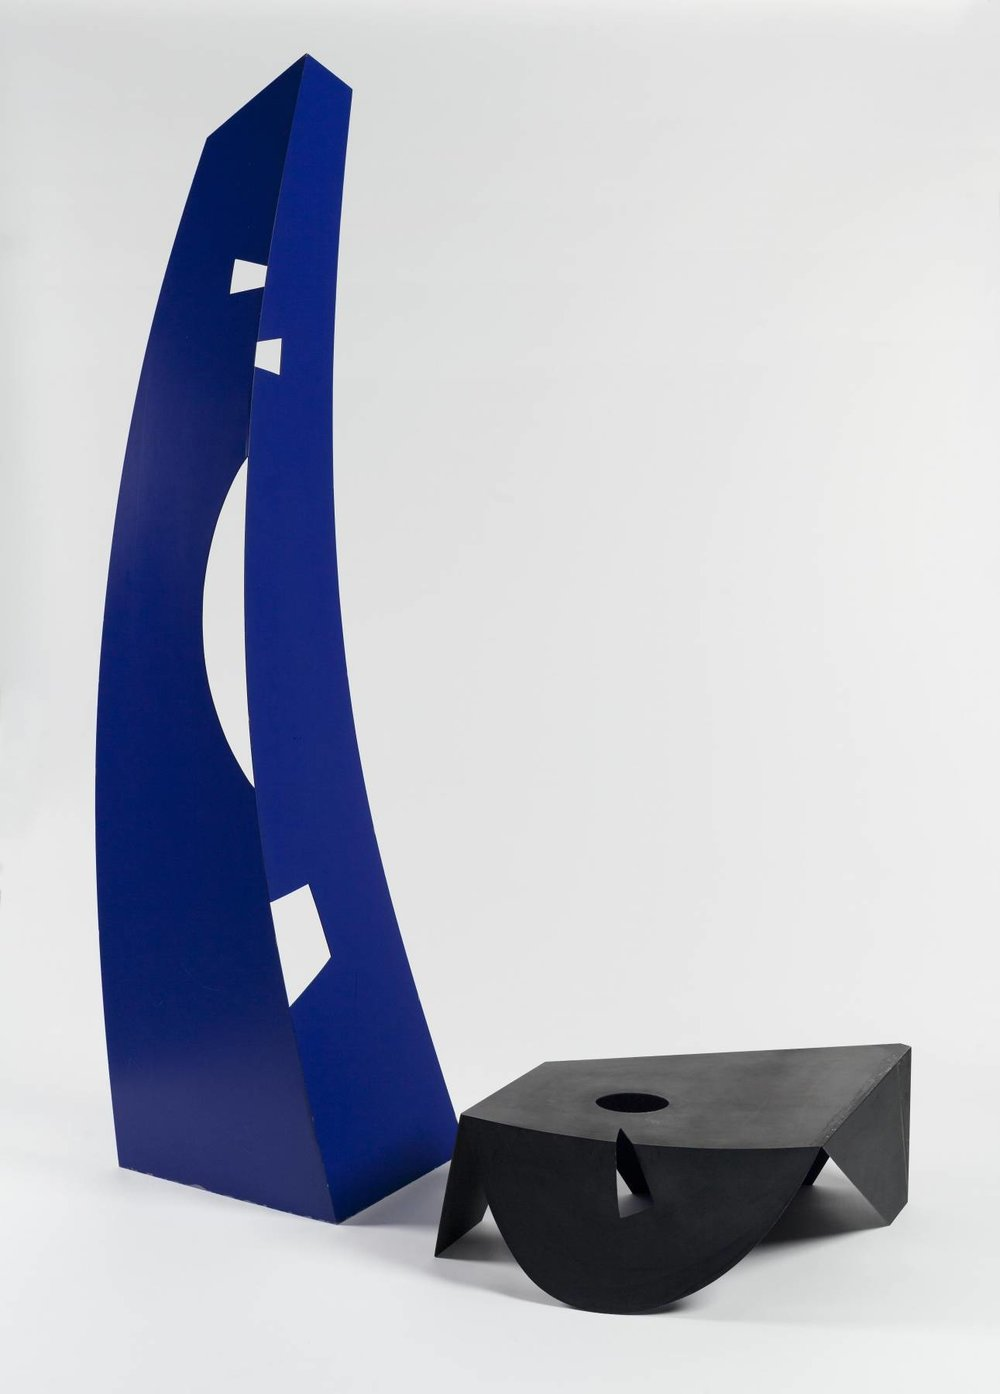 """Black and Blue, '' by isamu Noguchi, in the show  "" Isamu Noguchi and the Borders of Sculpture,'' at the Portland Museum of Art, Oct. 5-Jan. 6.    The museum says the show:    ""{I}nvestigates Noguchi's expansive artistic practice by exploring his efforts to enlarge and challenge conventional notions of sculptural boundaries. Born in 1904, the Japanese-American modernist experimented endlessly with the intersection of objects, people, and space over the course of his 60-year career. Melding ideas and approaches to art from across the globe, Noguchi created traditional sculpture, landscape architecture, play structures, monuments, stage sets, interior designs, furniture, and more. This exhibition brings aspects of his varied production together, complicating notions of form and function and using the juxtaposition of materials, shapes, and techniques to encourage audiences to reimagine their sense of what sculpture can be.''"